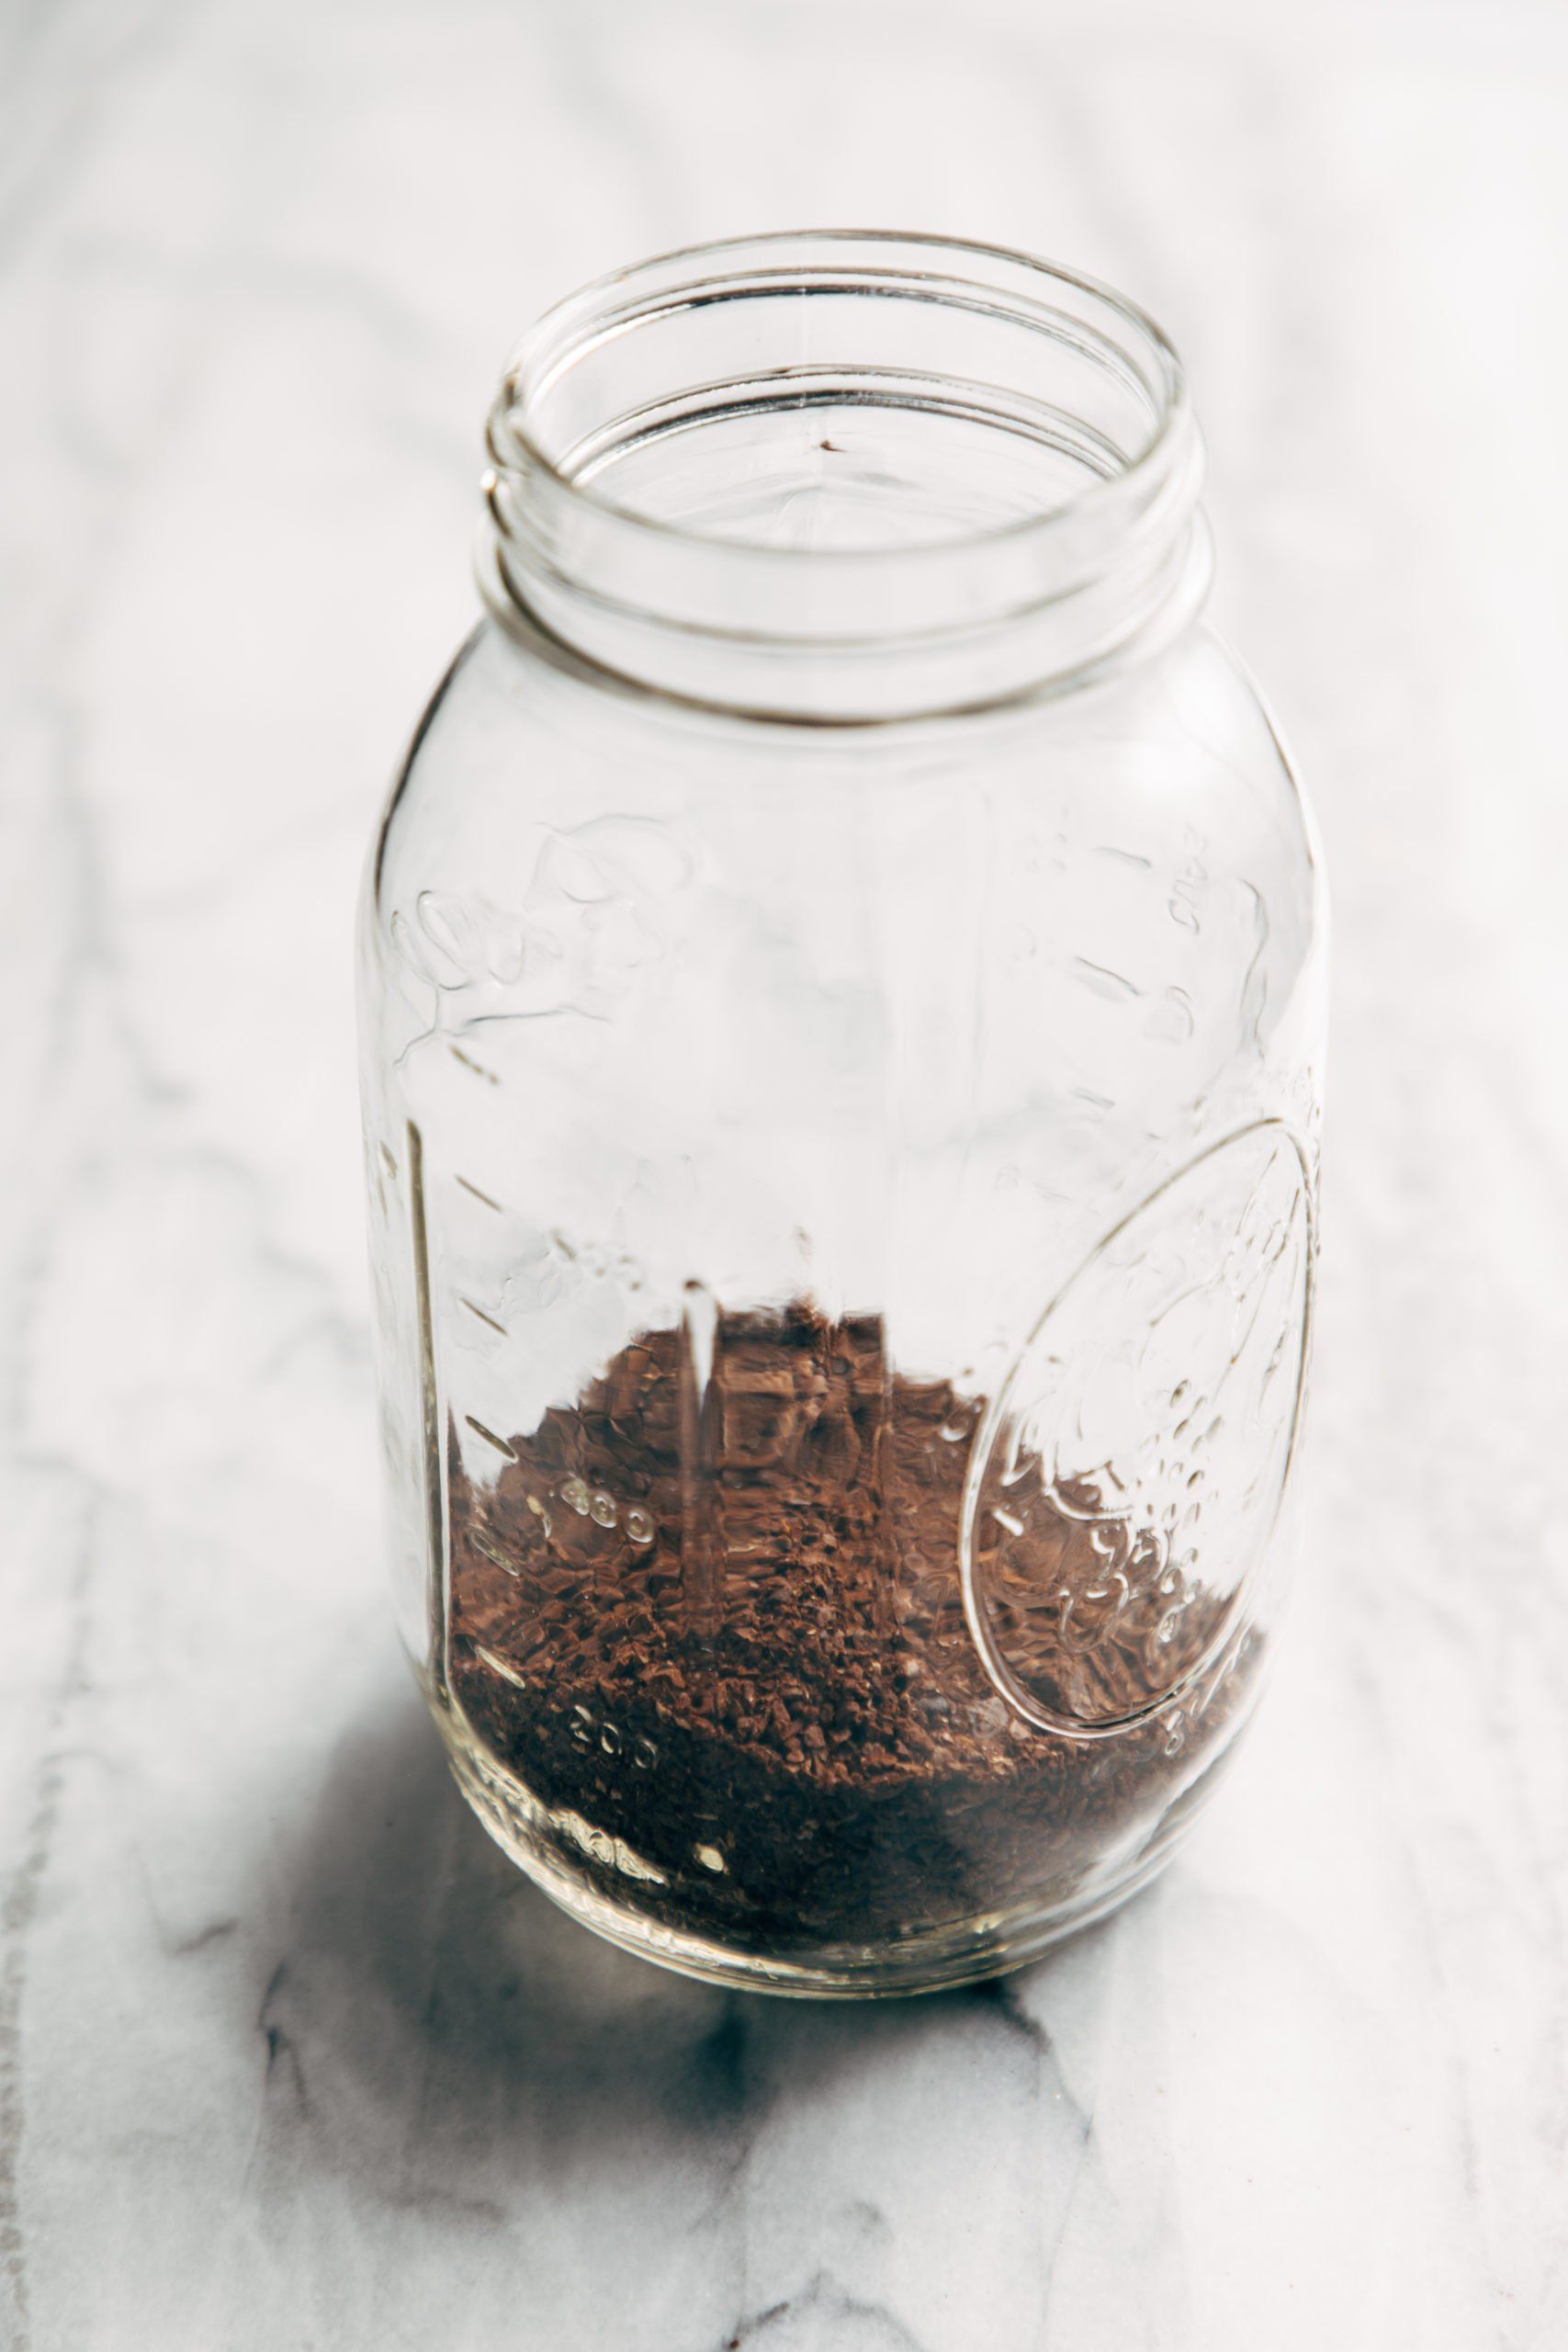 Coffee grounds in a jar for cold brew coffee